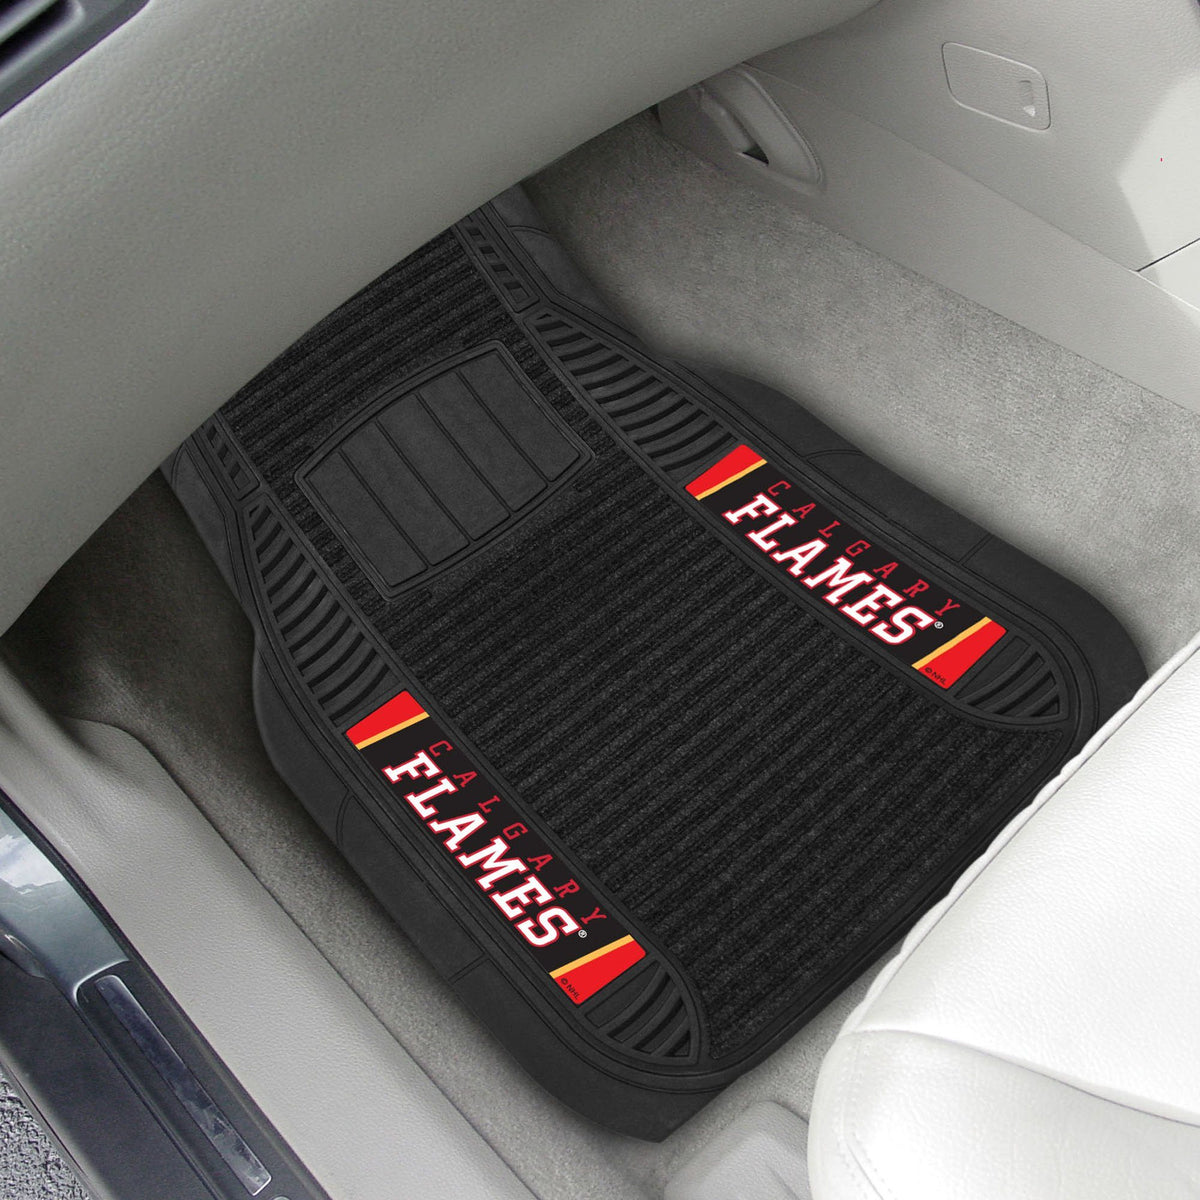 NHL - Deluxe Car Mat, 2-Piece Set NHL Mats, Front Car Mats, 2-pc Deluxe Car Mat Set, NHL, Auto Fan Mats Calgary Flames